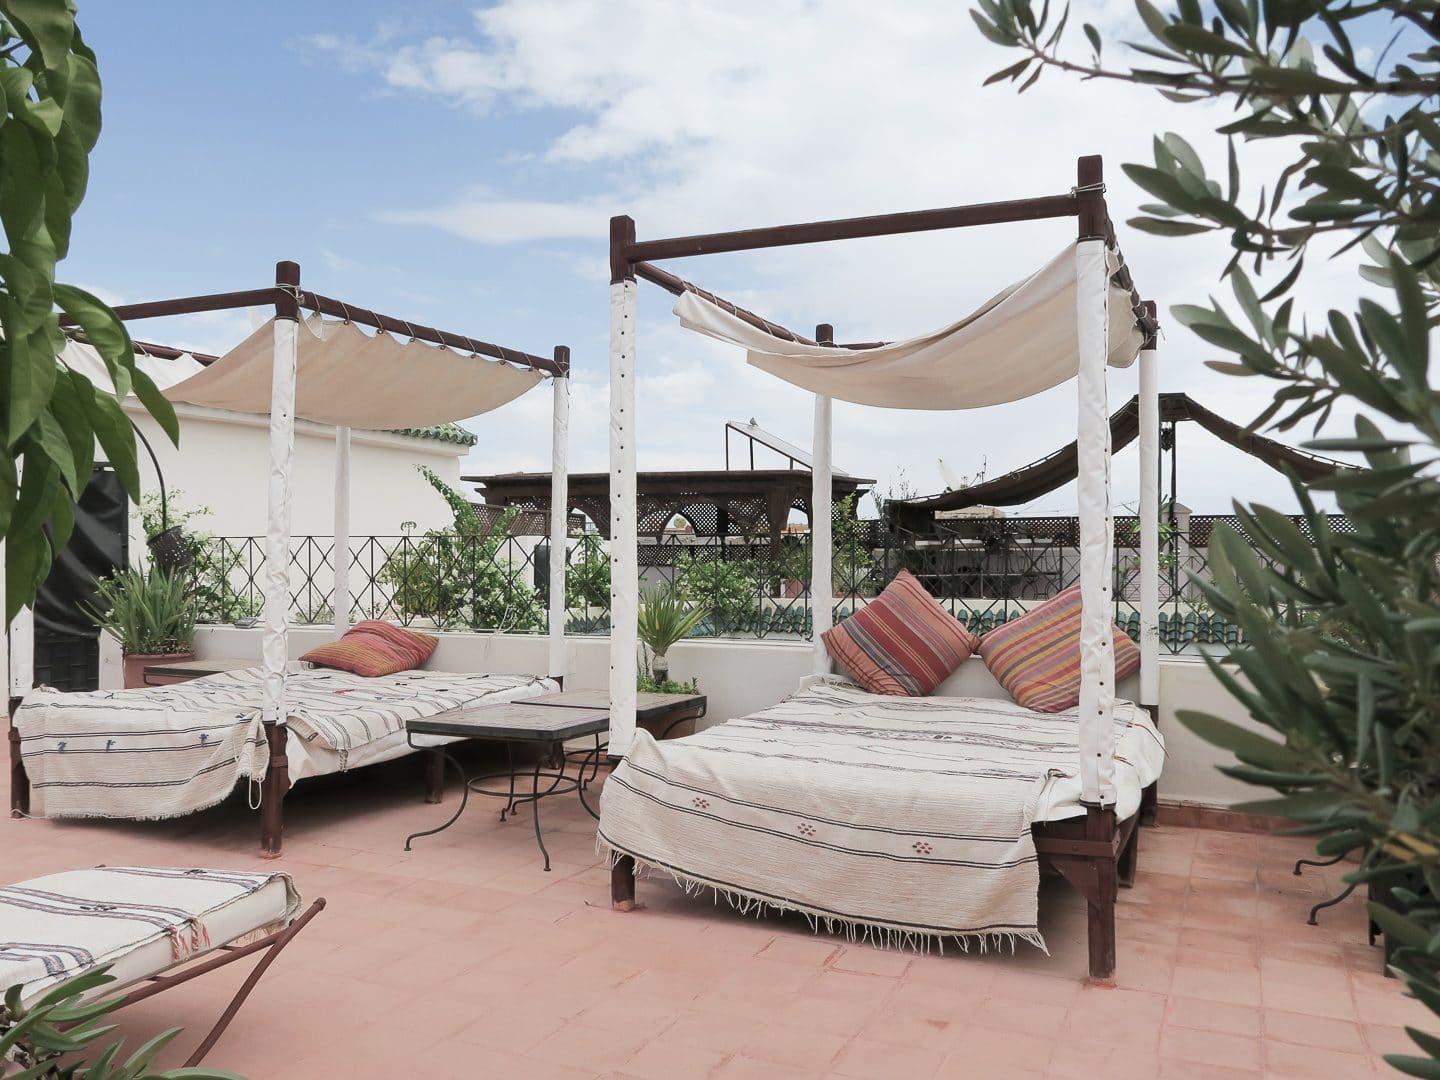 Rooftop Terrace at Riad Dar Bounouar | Curiously Conscious